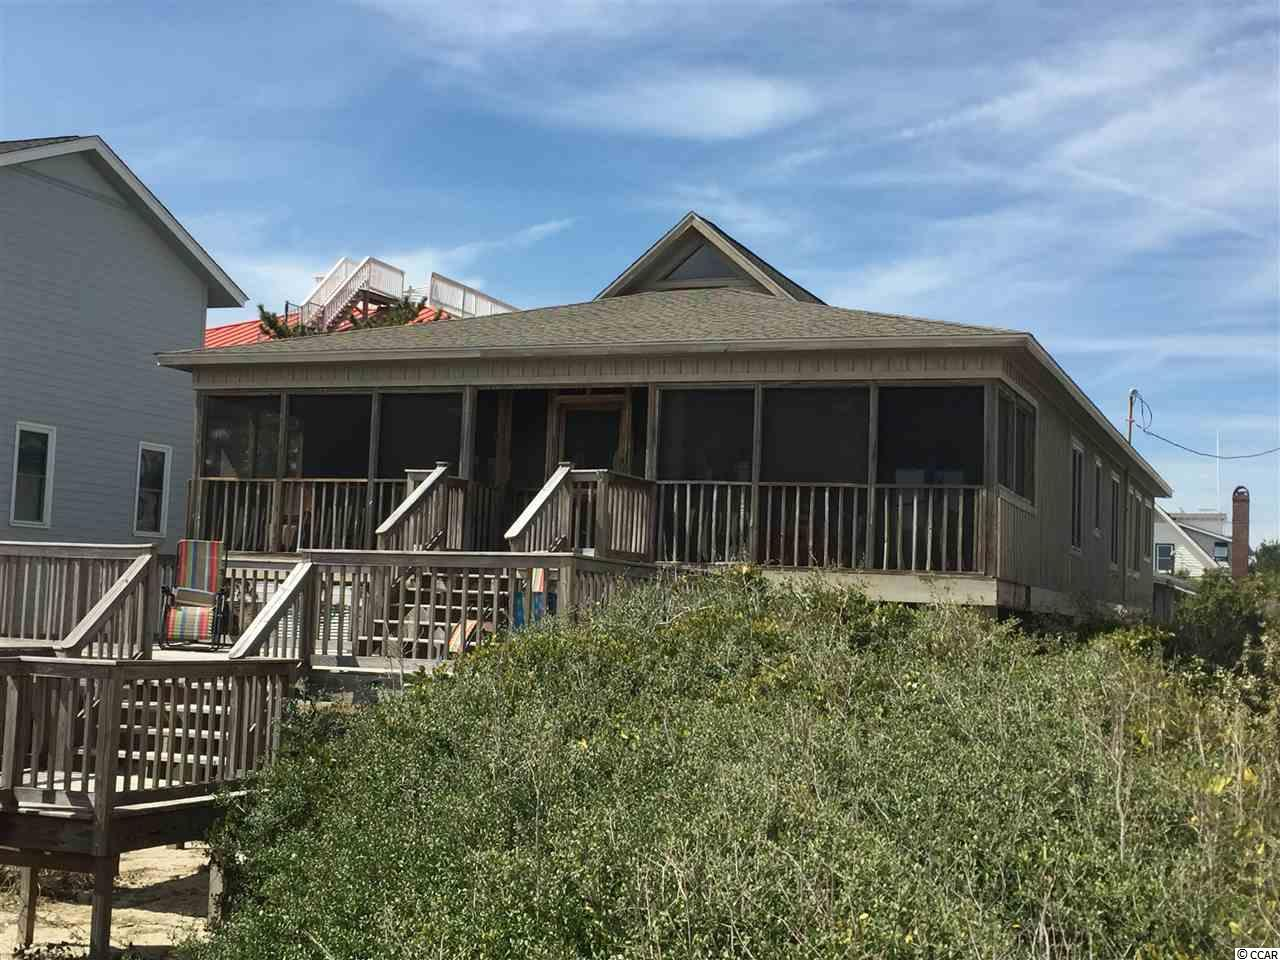 Additional photo for property listing at 226A & 226B Atlantic Ave 226A & 226B Atlantic Ave Pawleys Island, Carolina Do Sul,29585 Estados Unidos